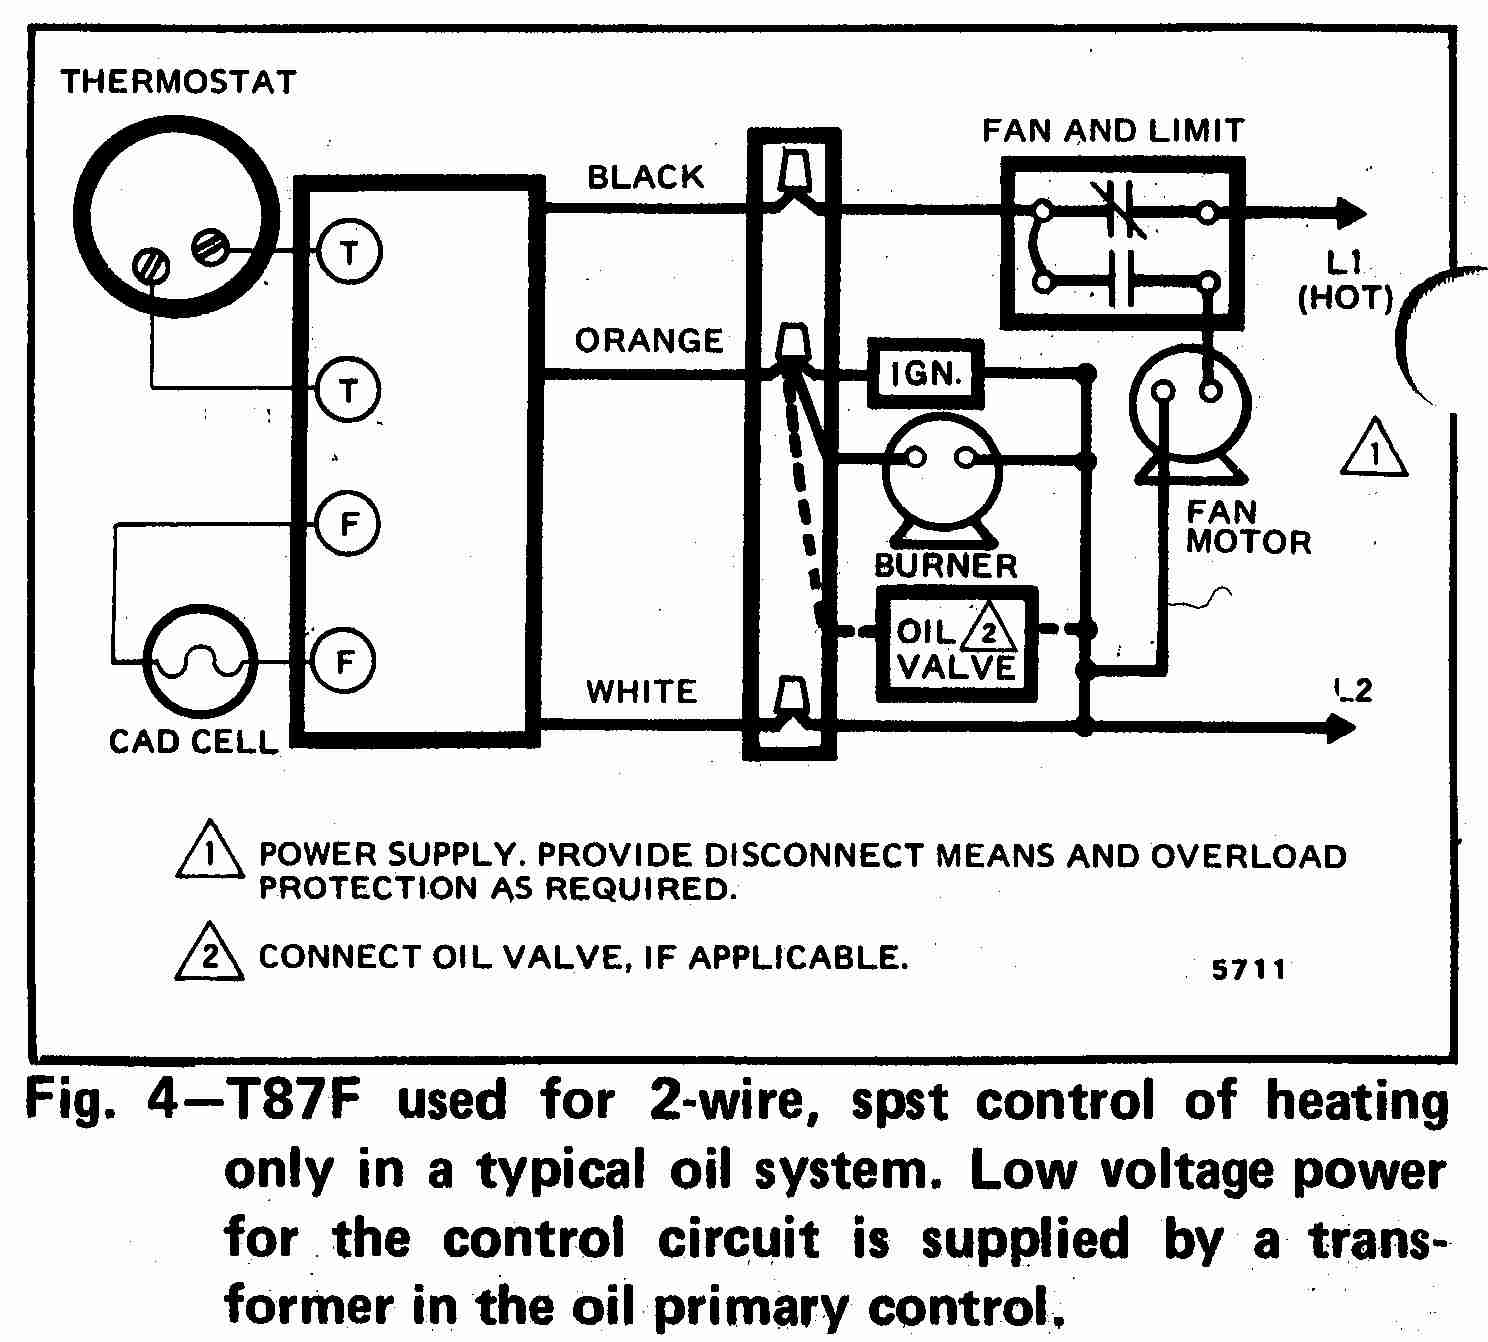 Chromalox thermostat wiring diagrams for HVAC systems Chromalox  installation instructions | Hvac Control Wiring |  | InspectApedia.com